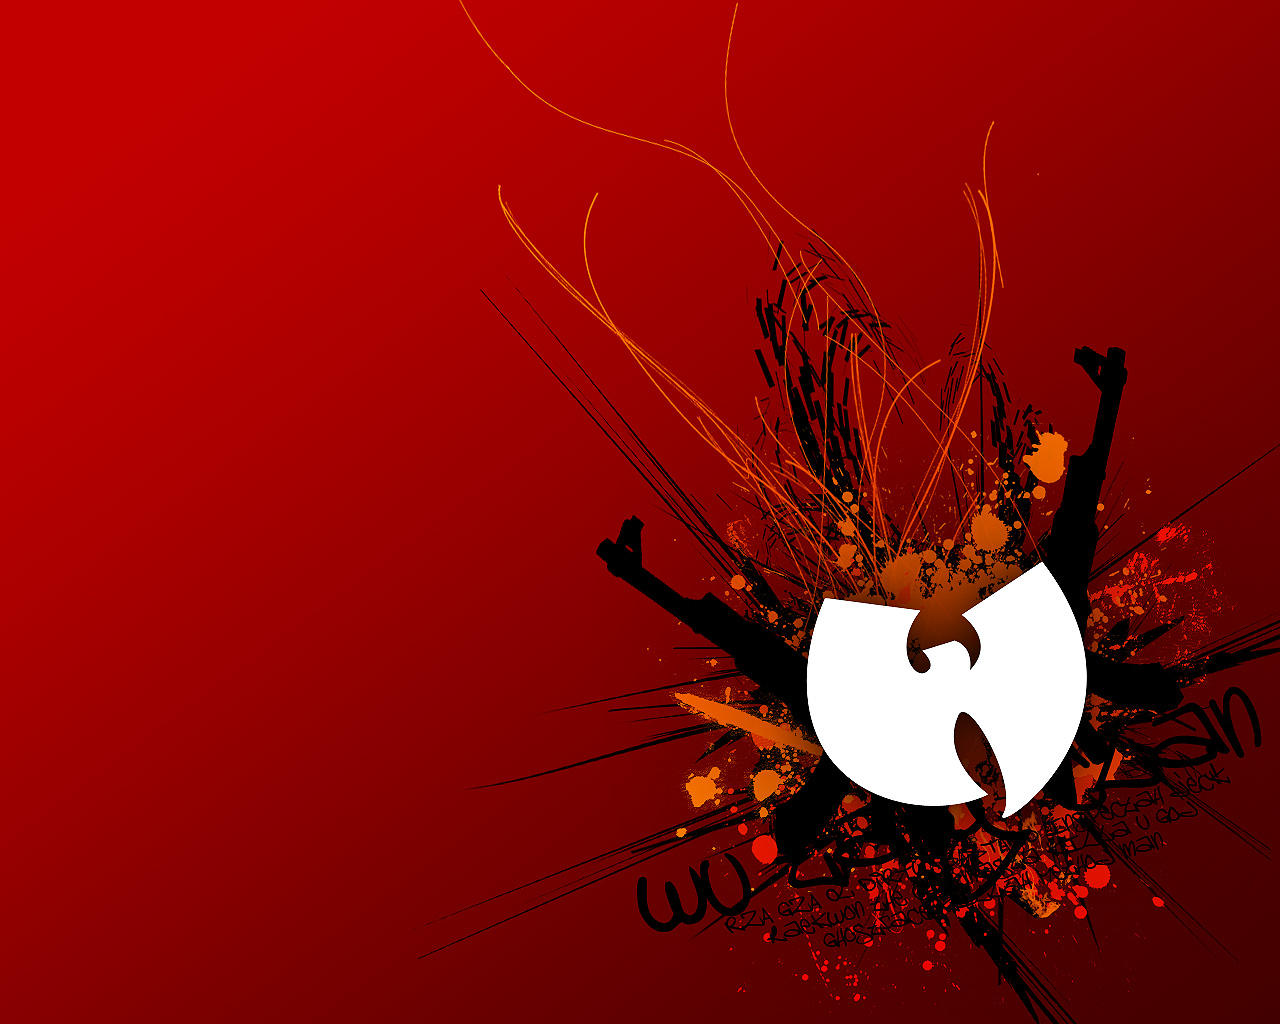 wu tang tribute wallpaper by adept on deviantart